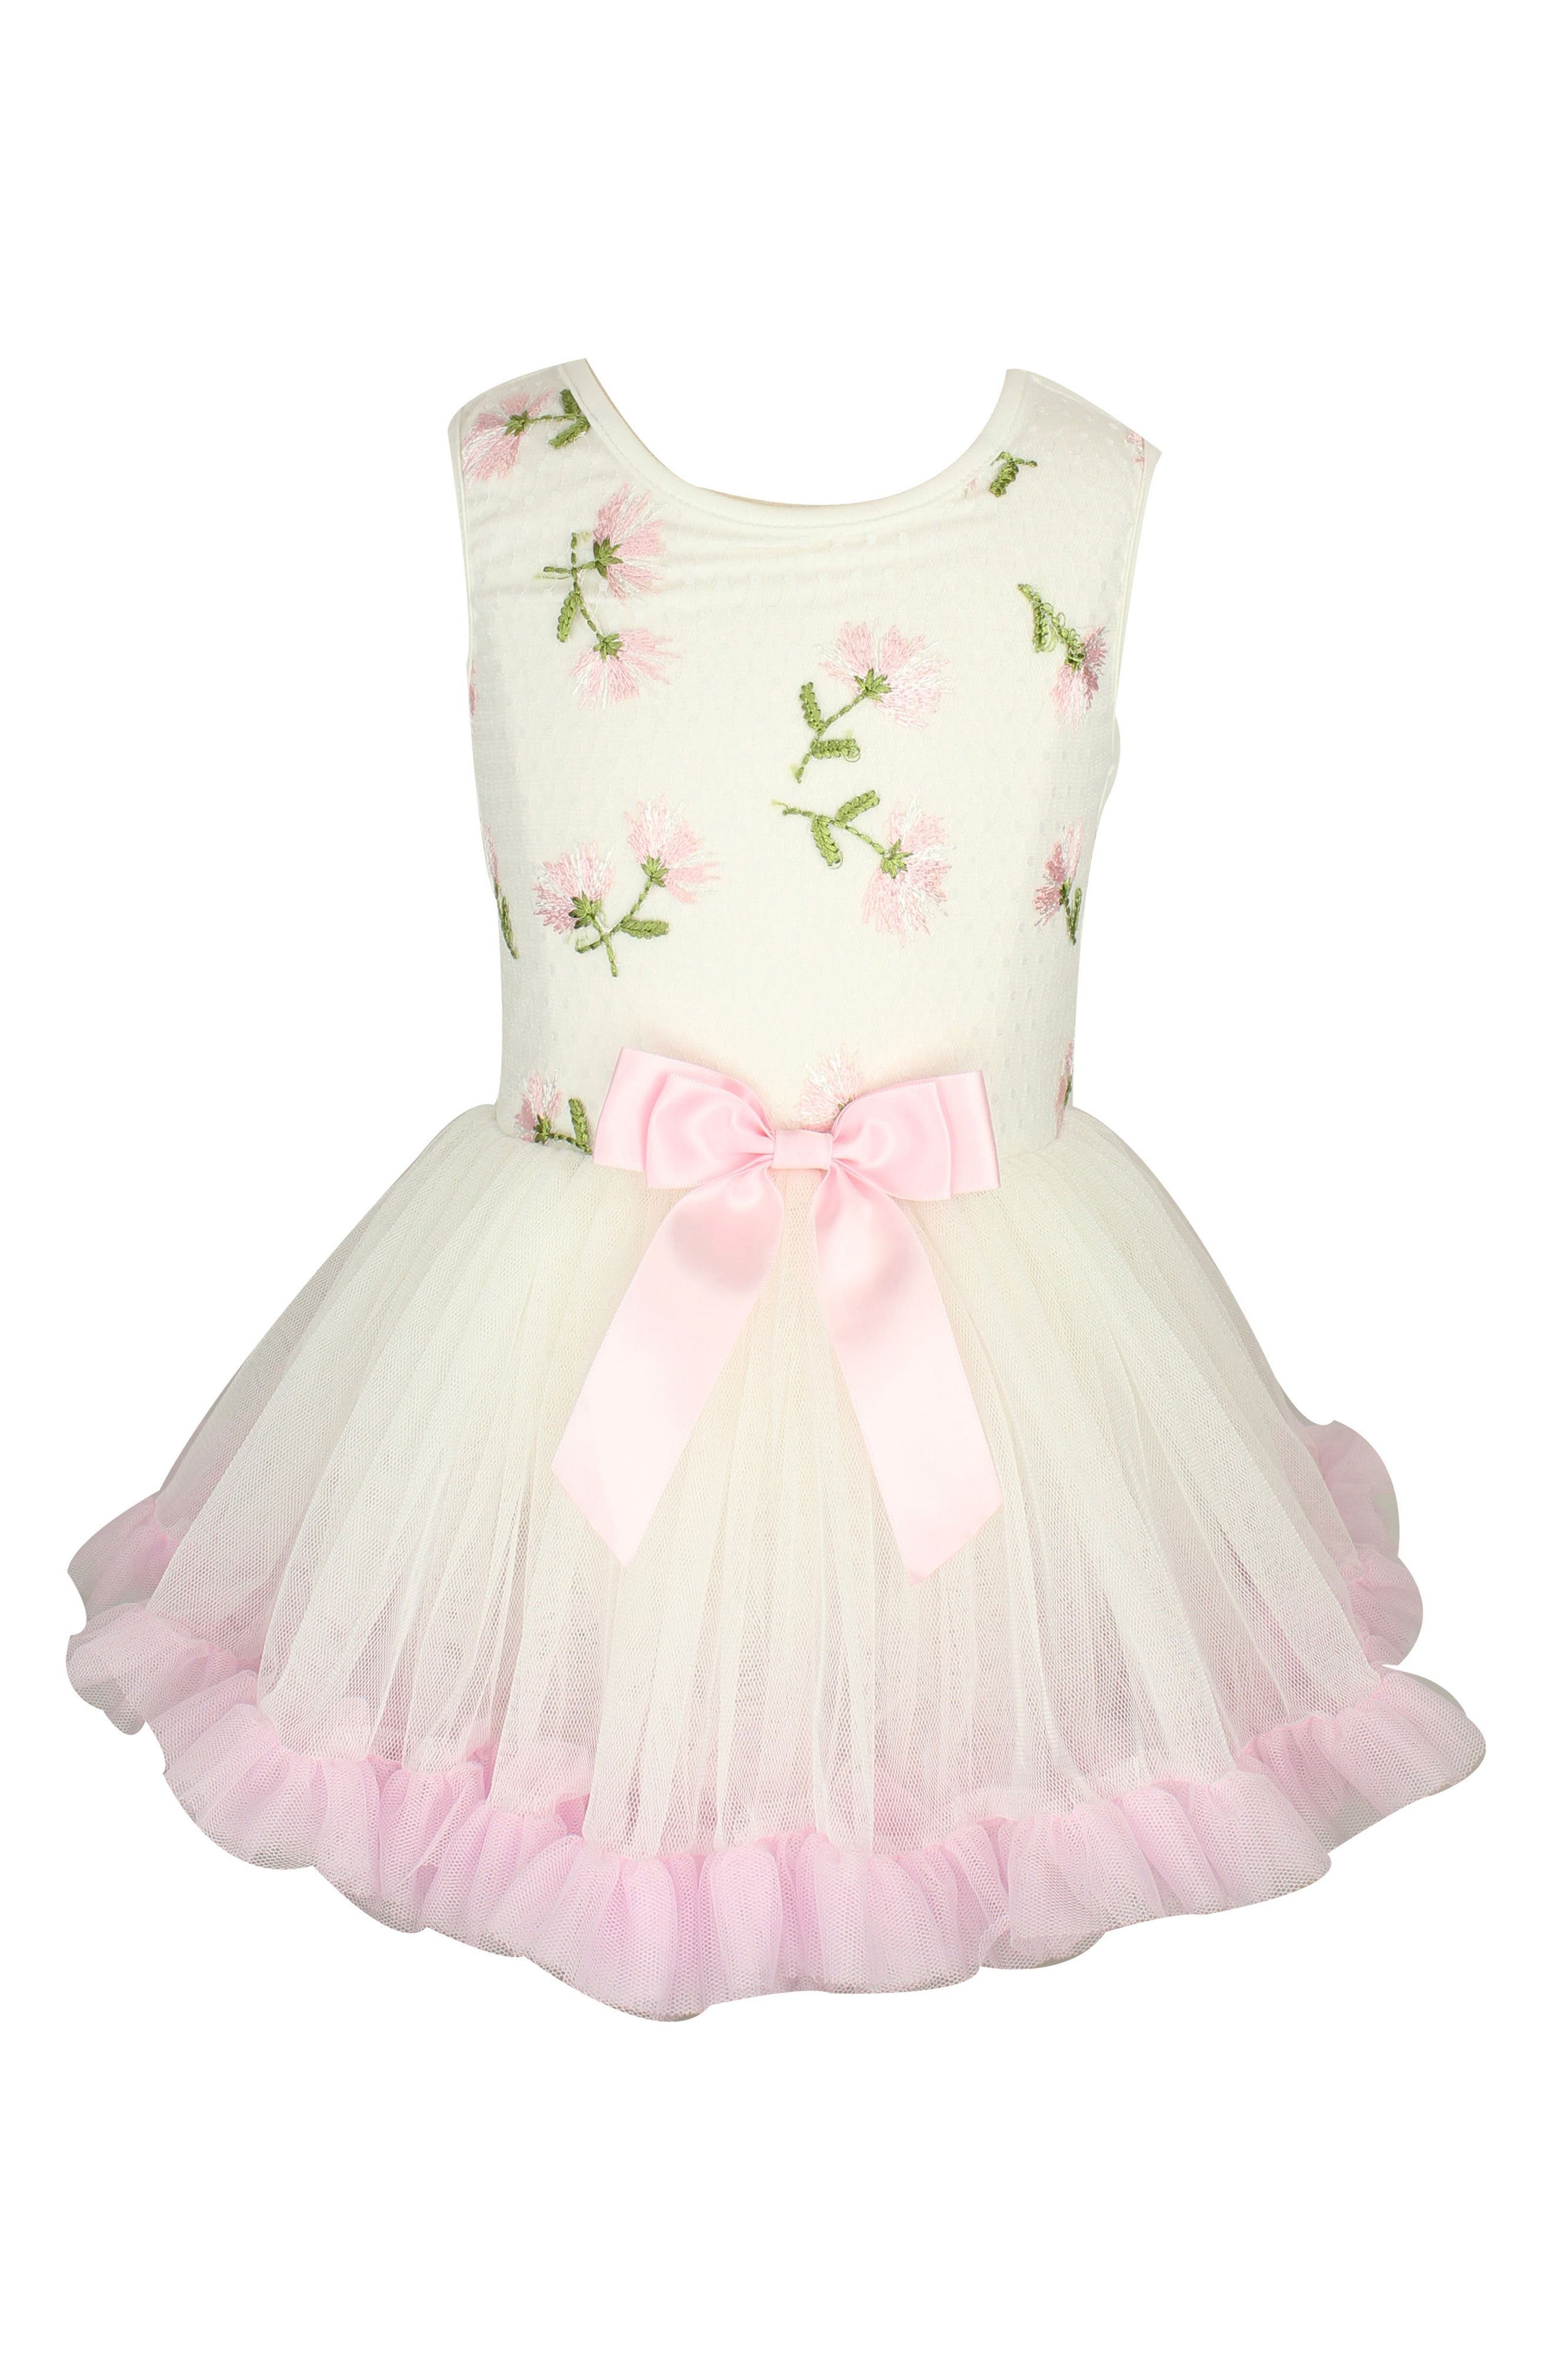 Embroidered Flowers Tutu Dress,                             Main thumbnail 1, color,                             White